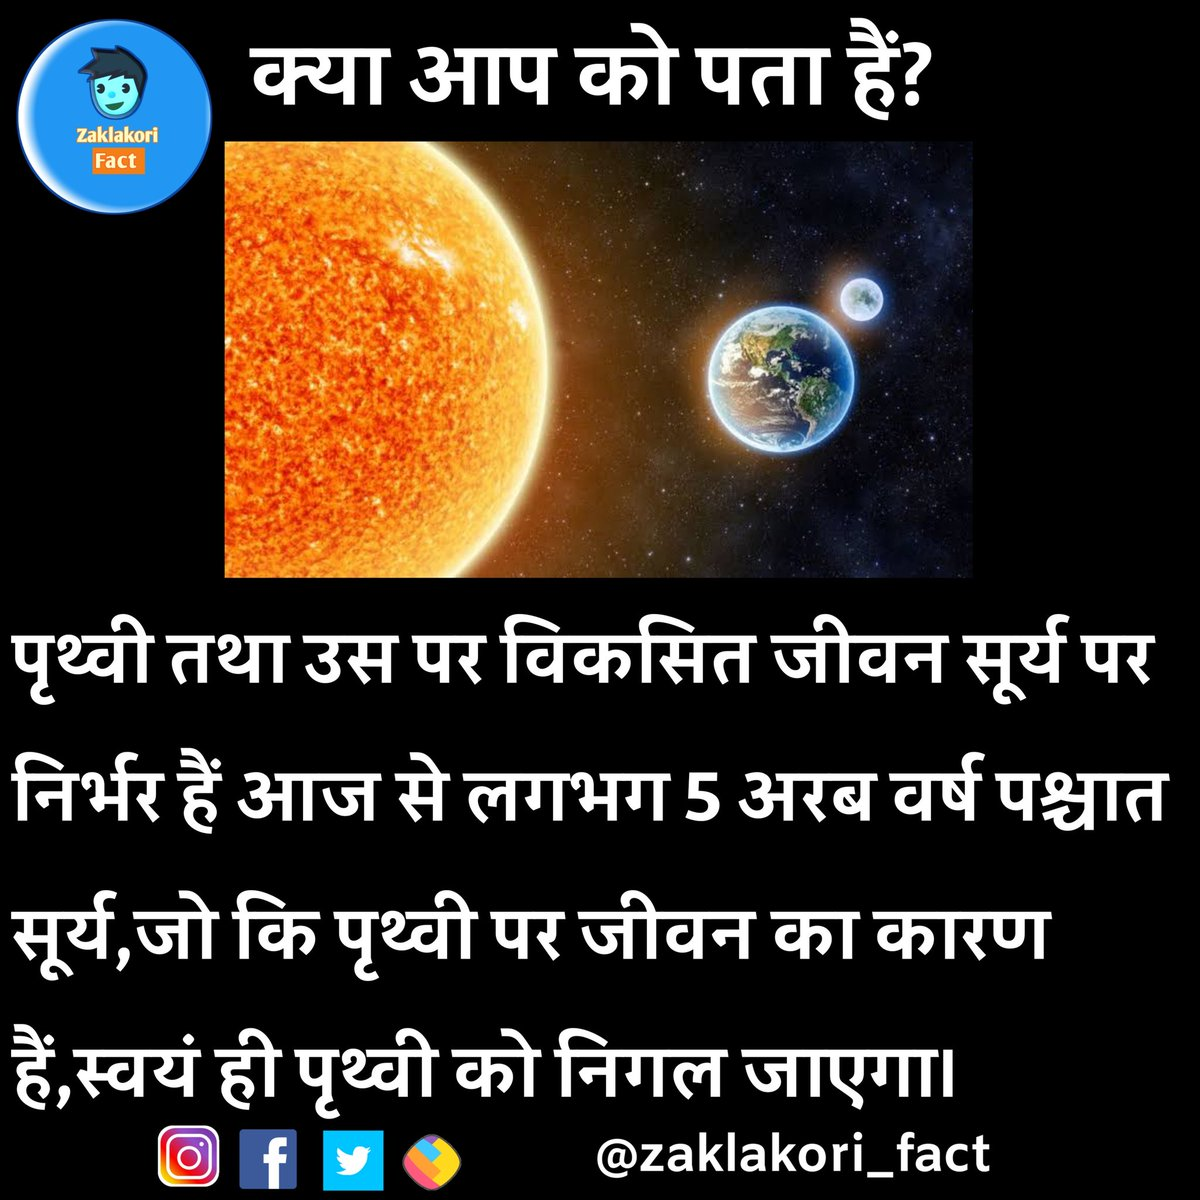 To know more interesting facts about india and world follow us @zaklakori_fact  #Sun #Earth #Moon #SolarSystem #Galaxies  #interestingfacts #hindifact  #KnowledgeIsPower